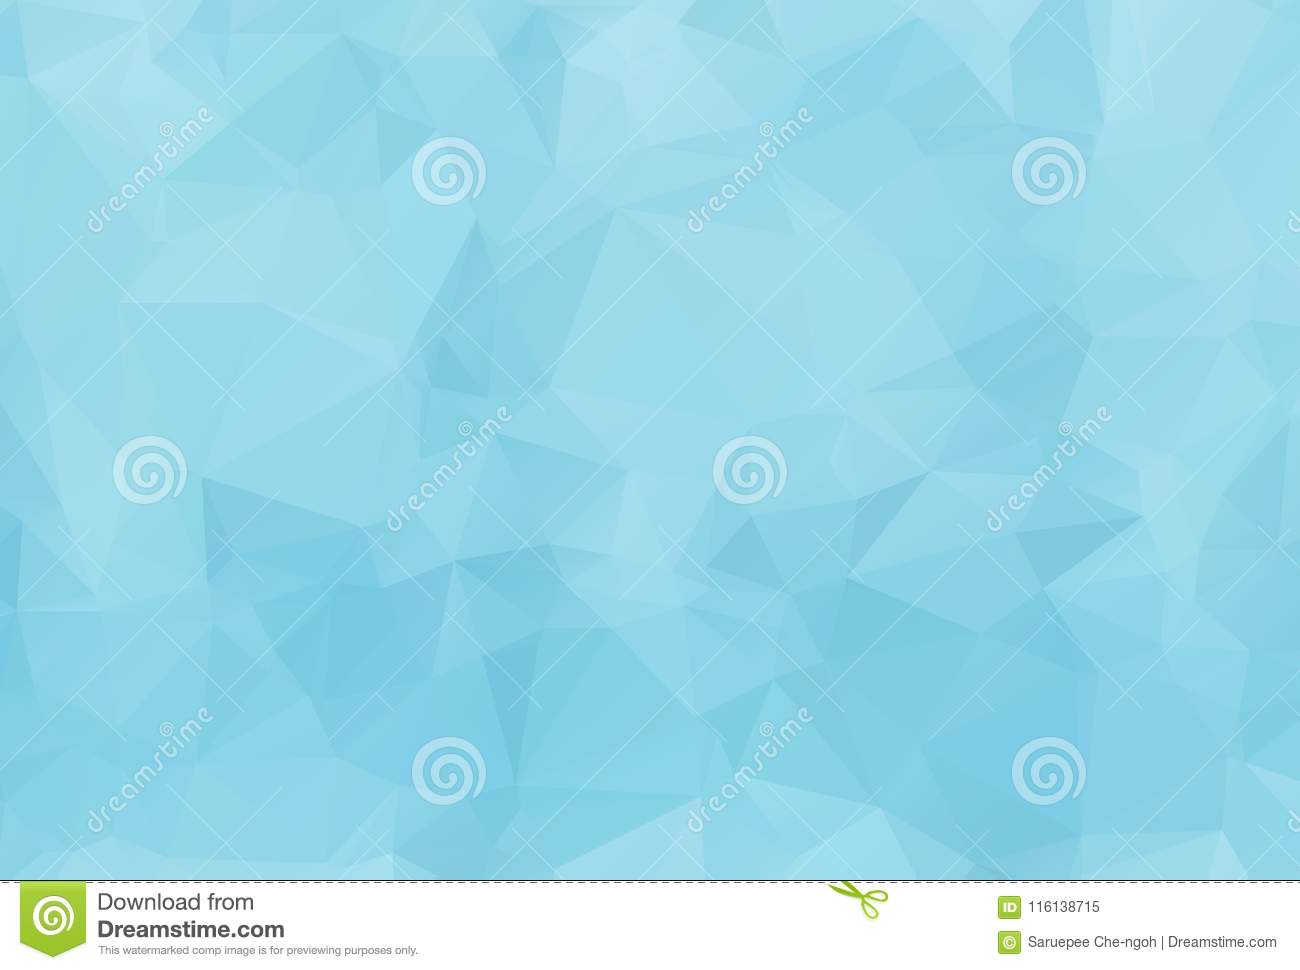 Blue White Light Polygonal Mosaic Background, Vector illustration,